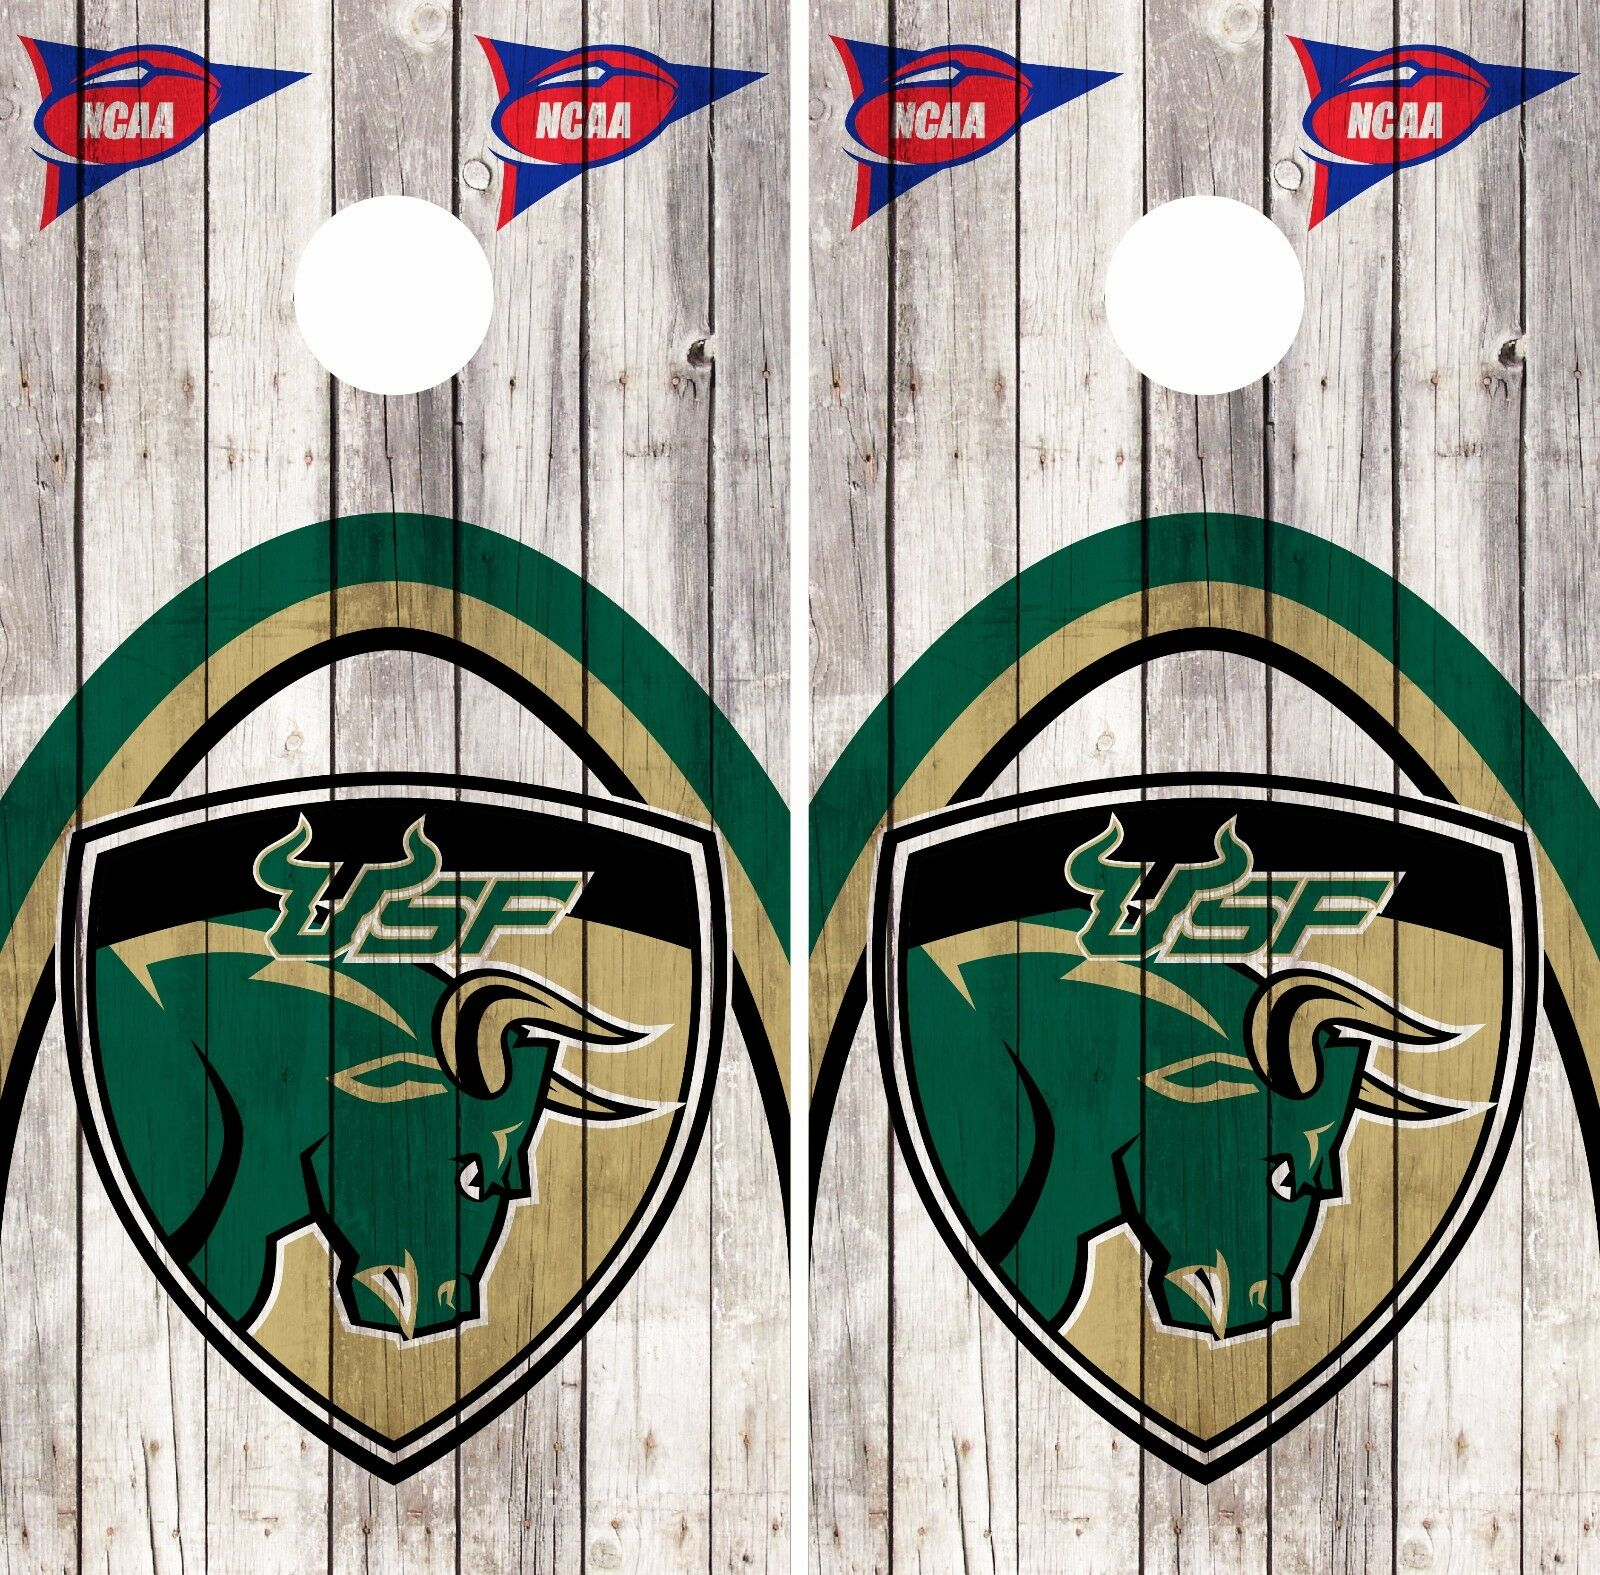 South Florida Bulls Cornhole Skin Wrap NCAA College Flag  Wood Design Vinyl DR375  reasonable price